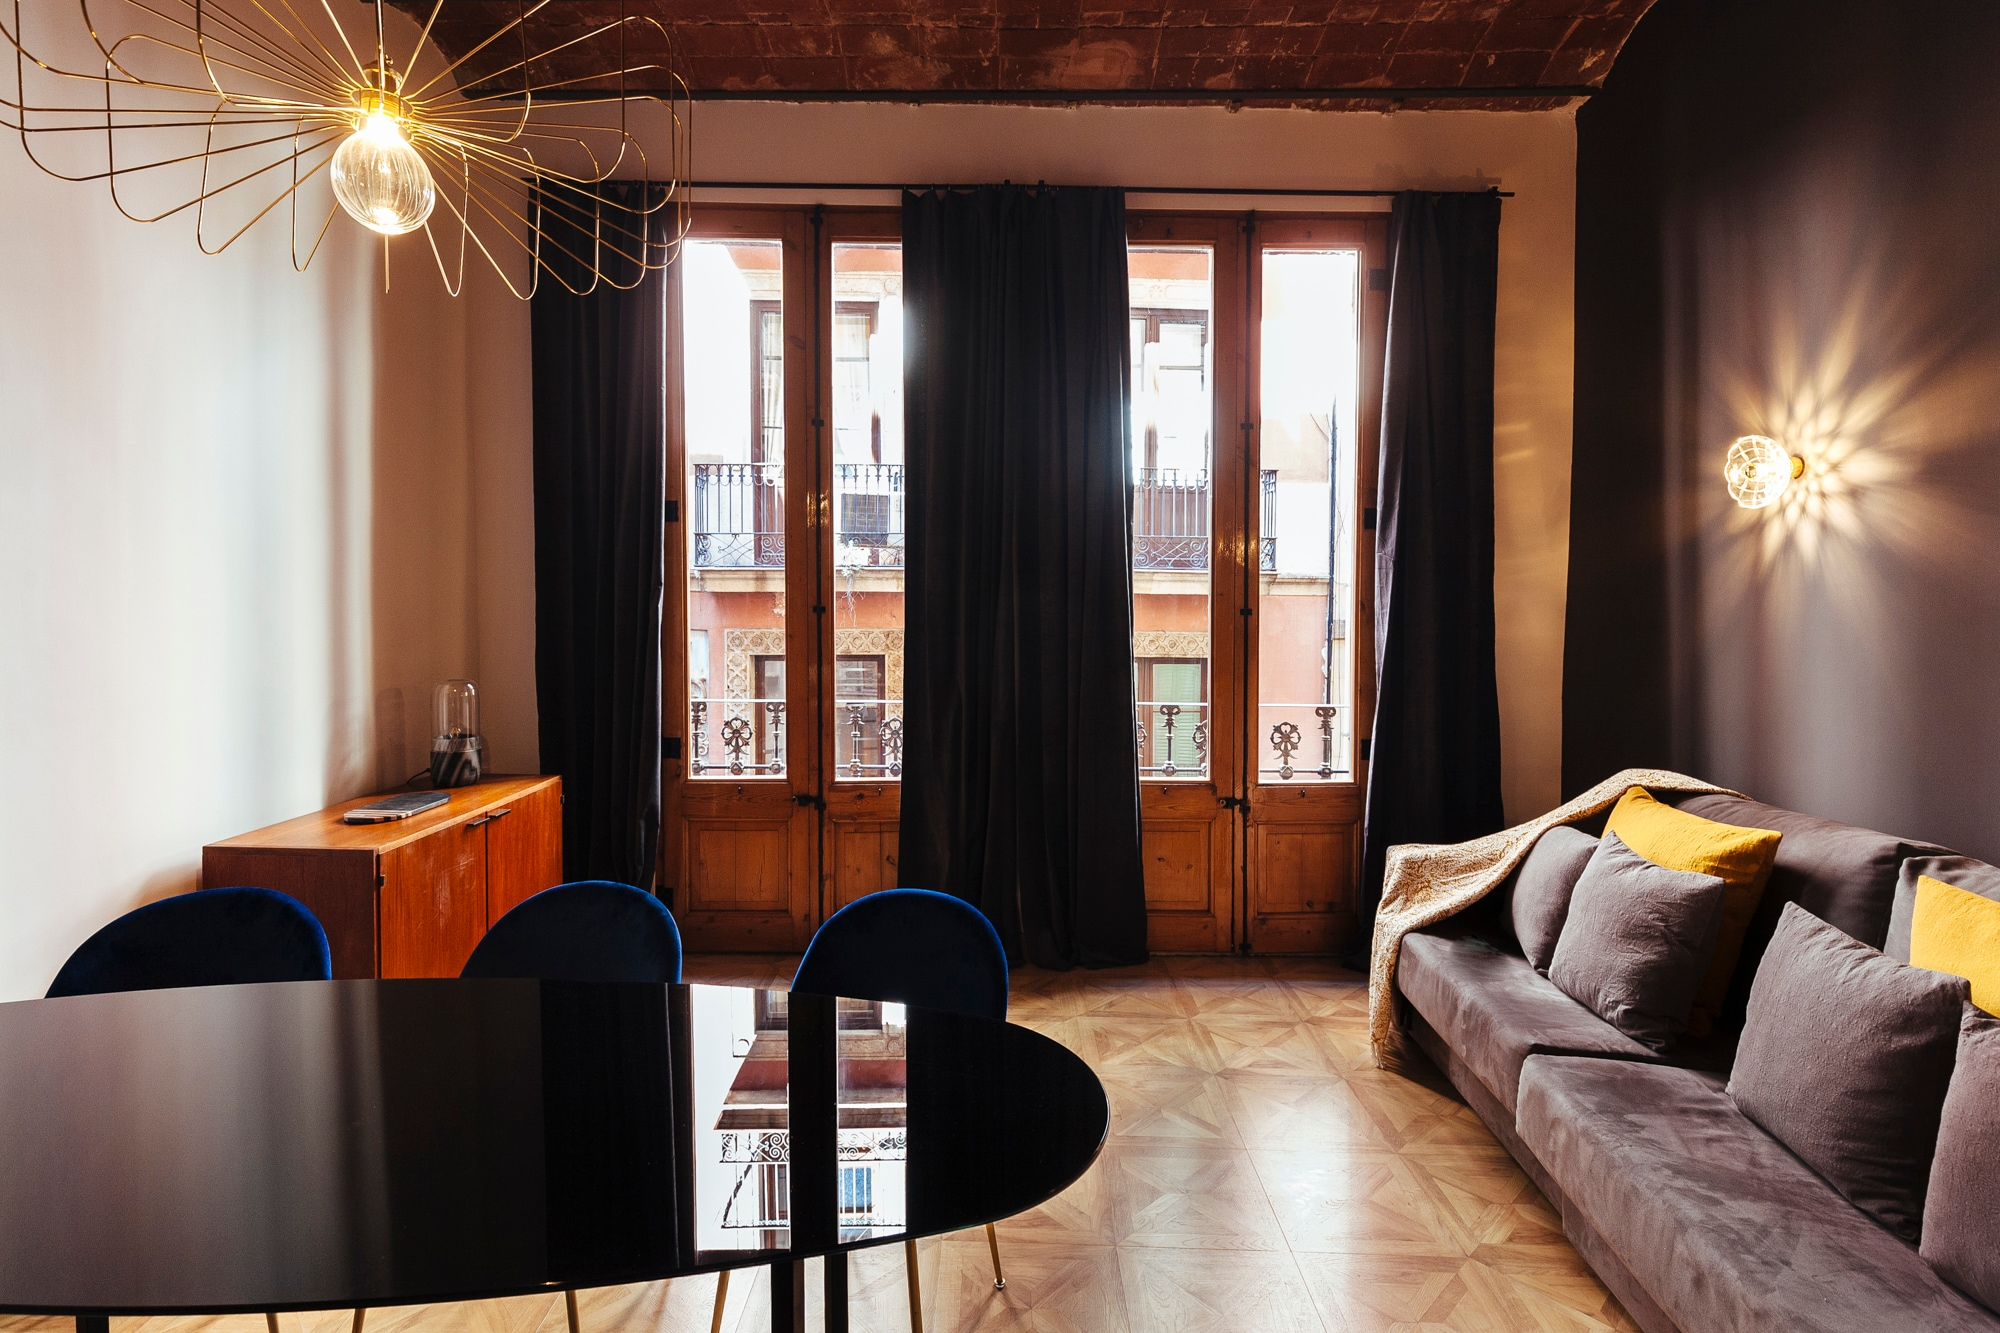 Property Image 1 - Impeccable 2 bedroom apartment in Barcelona´s old town heart.